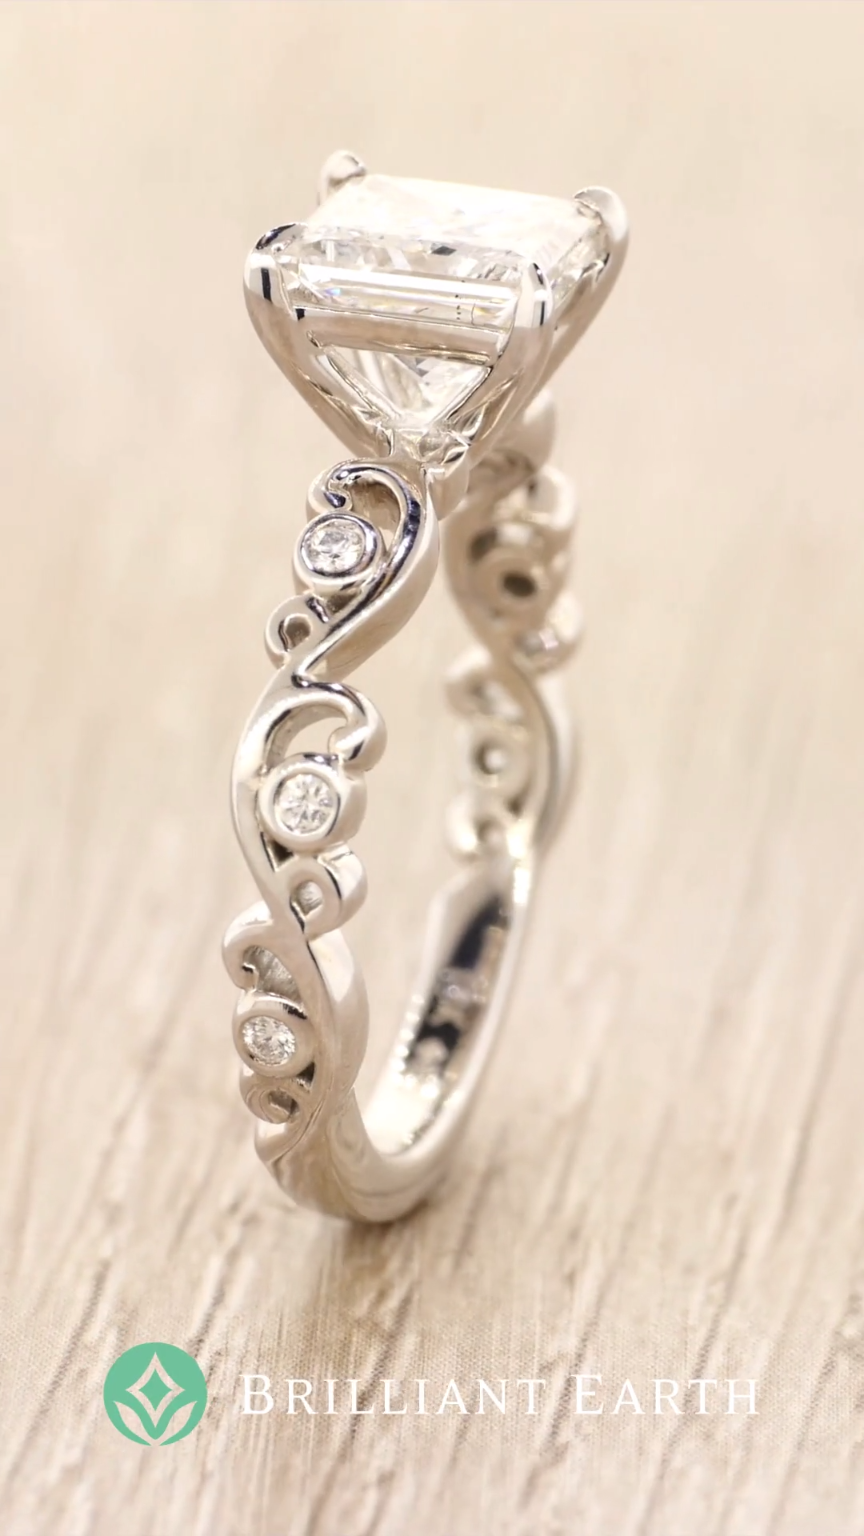 2522537ca12 Explore our collection of diamond engagement rings featuring wispy vines